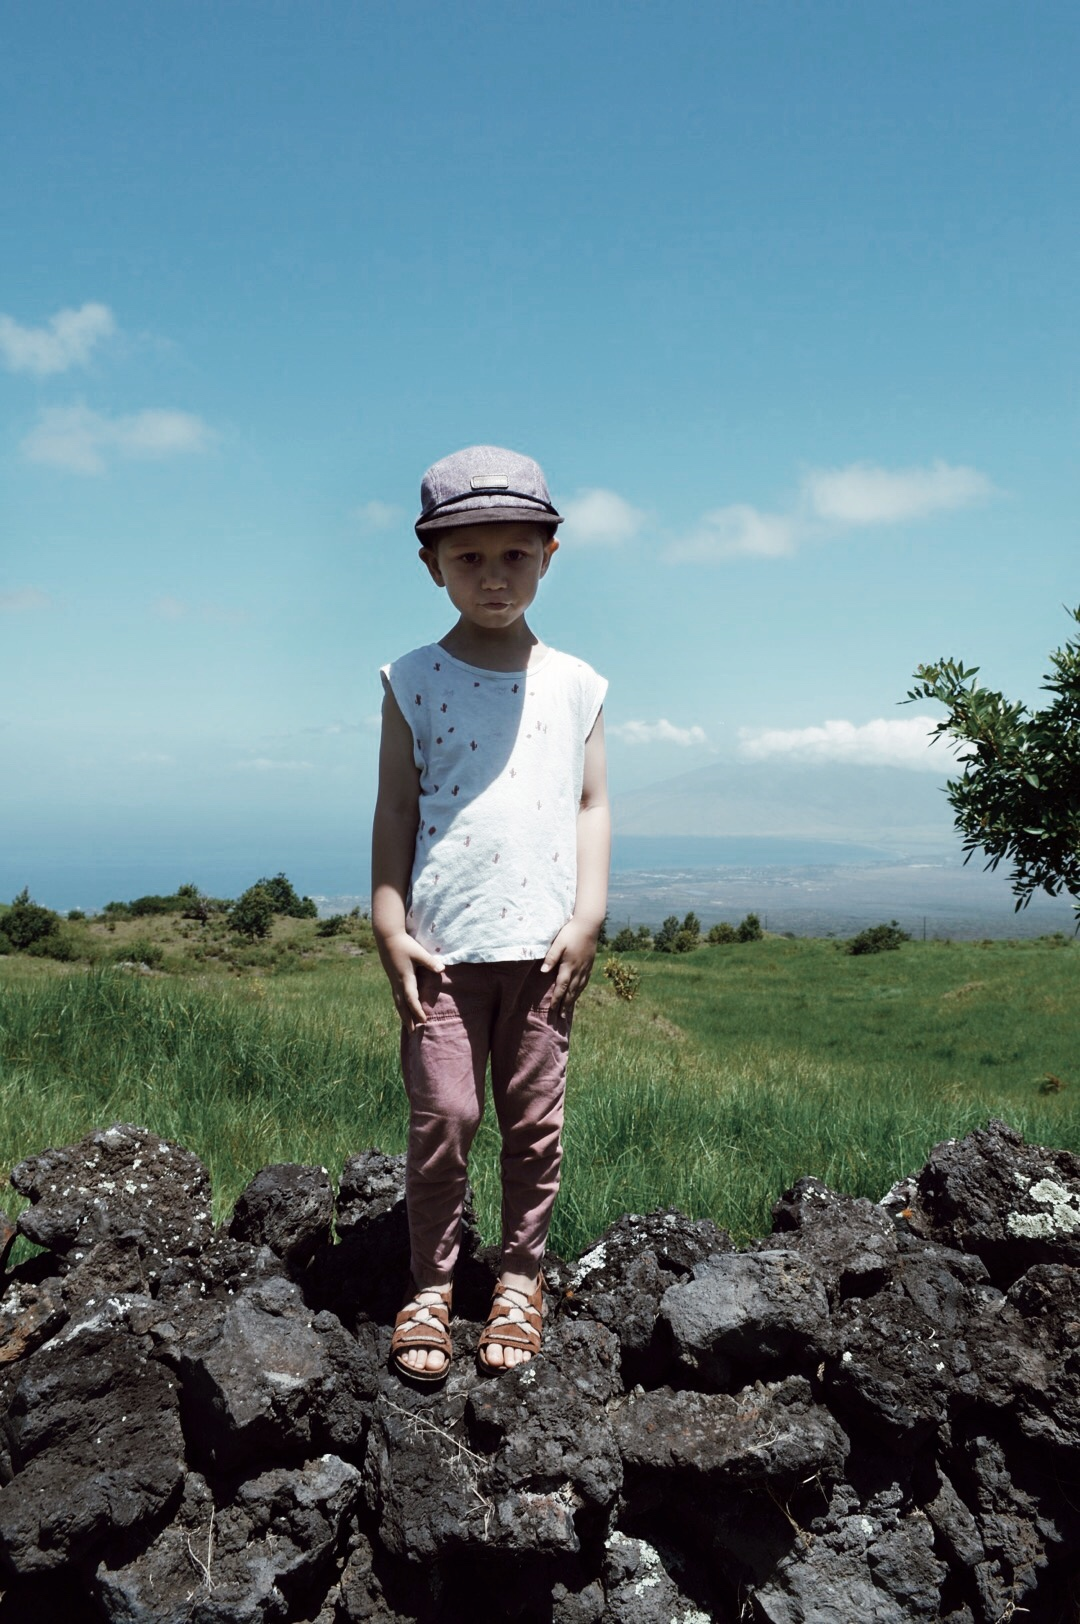 he was a little scared to stand on the lava rock